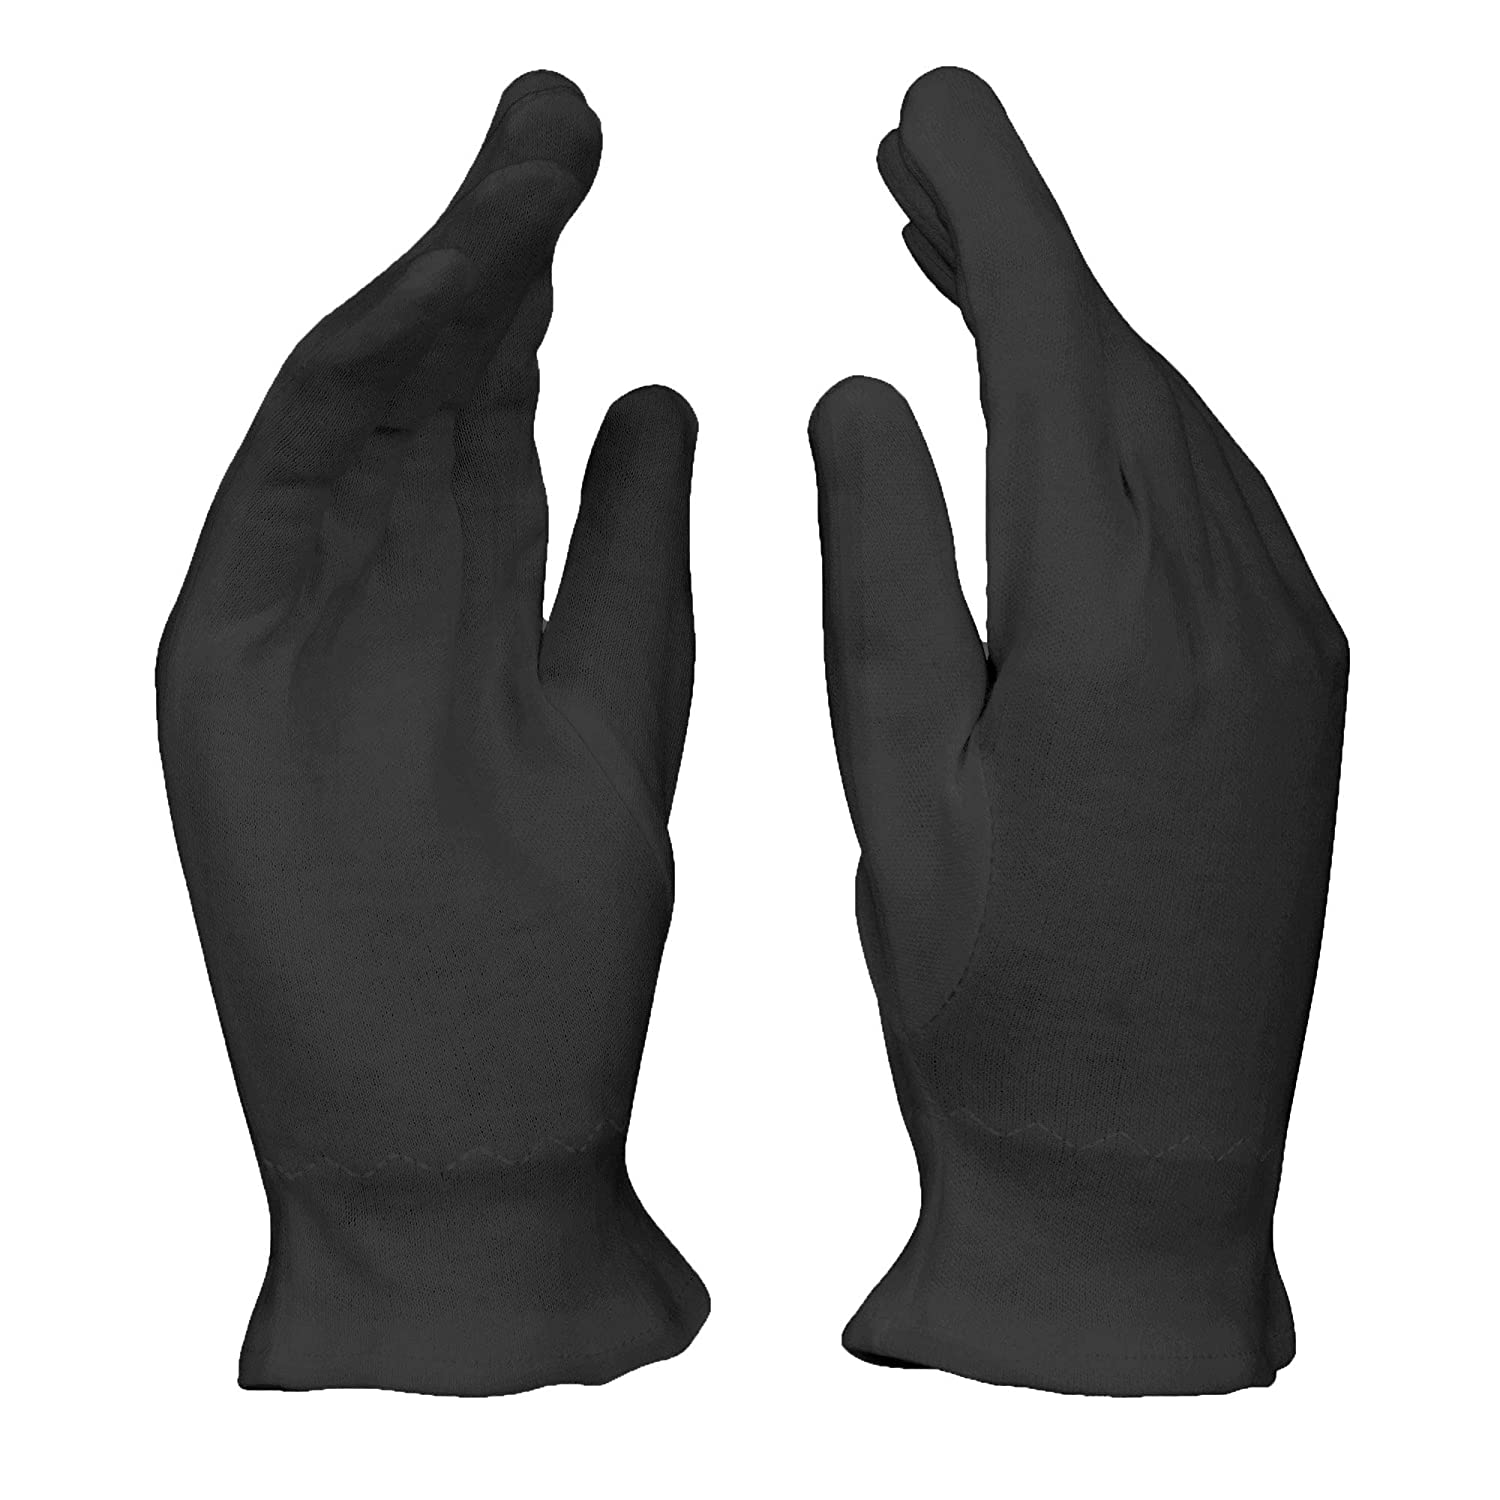 Large Black Cotton Gloves